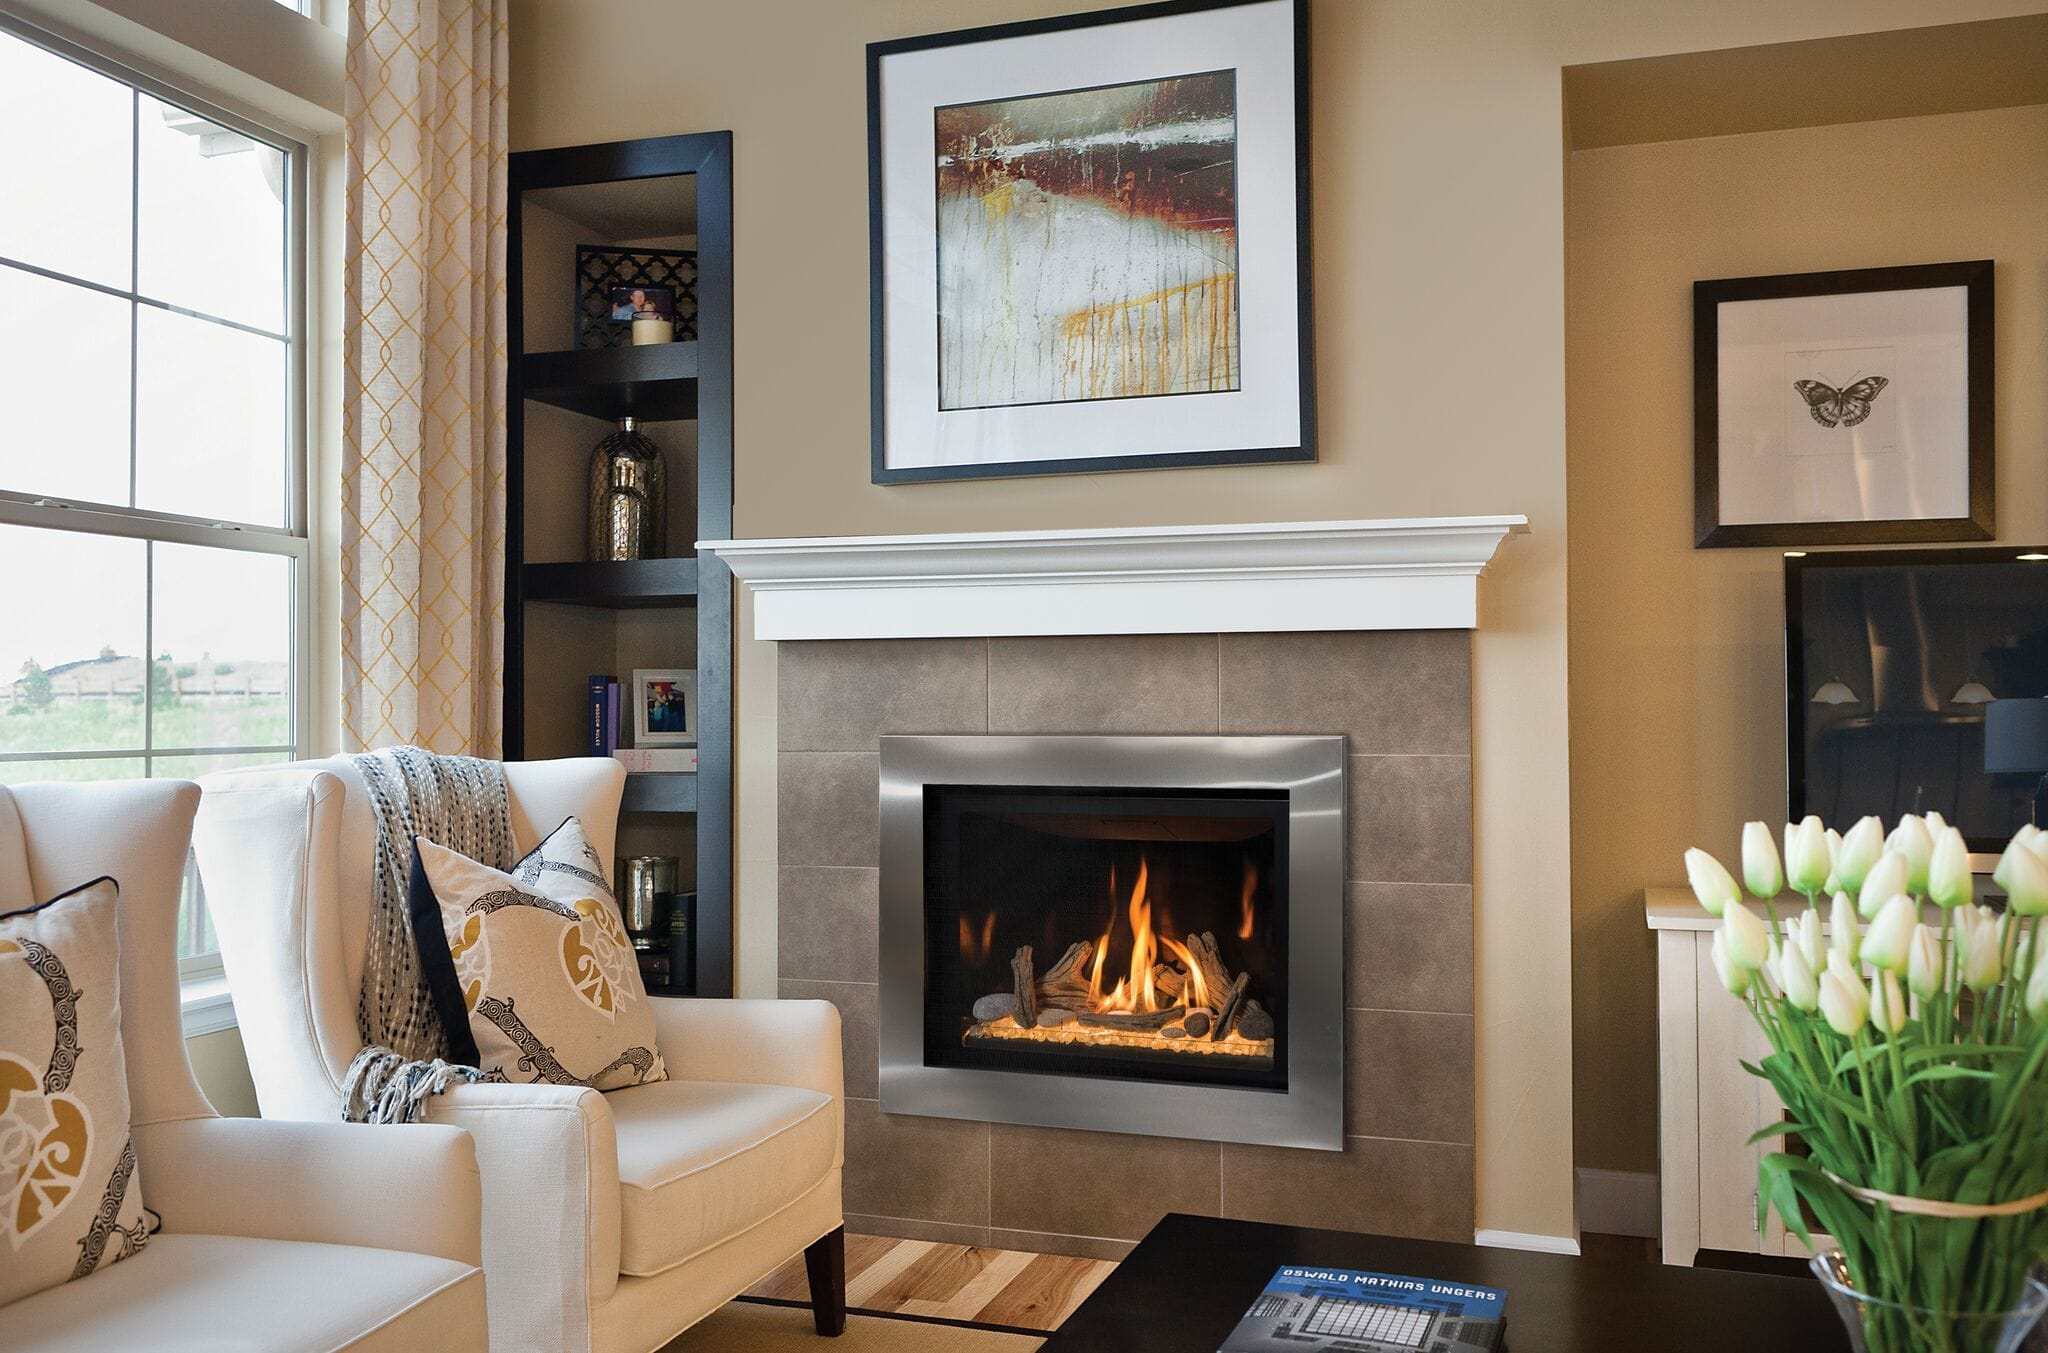 How To Operate A Fireplace How Does A Gas Fireplace Work